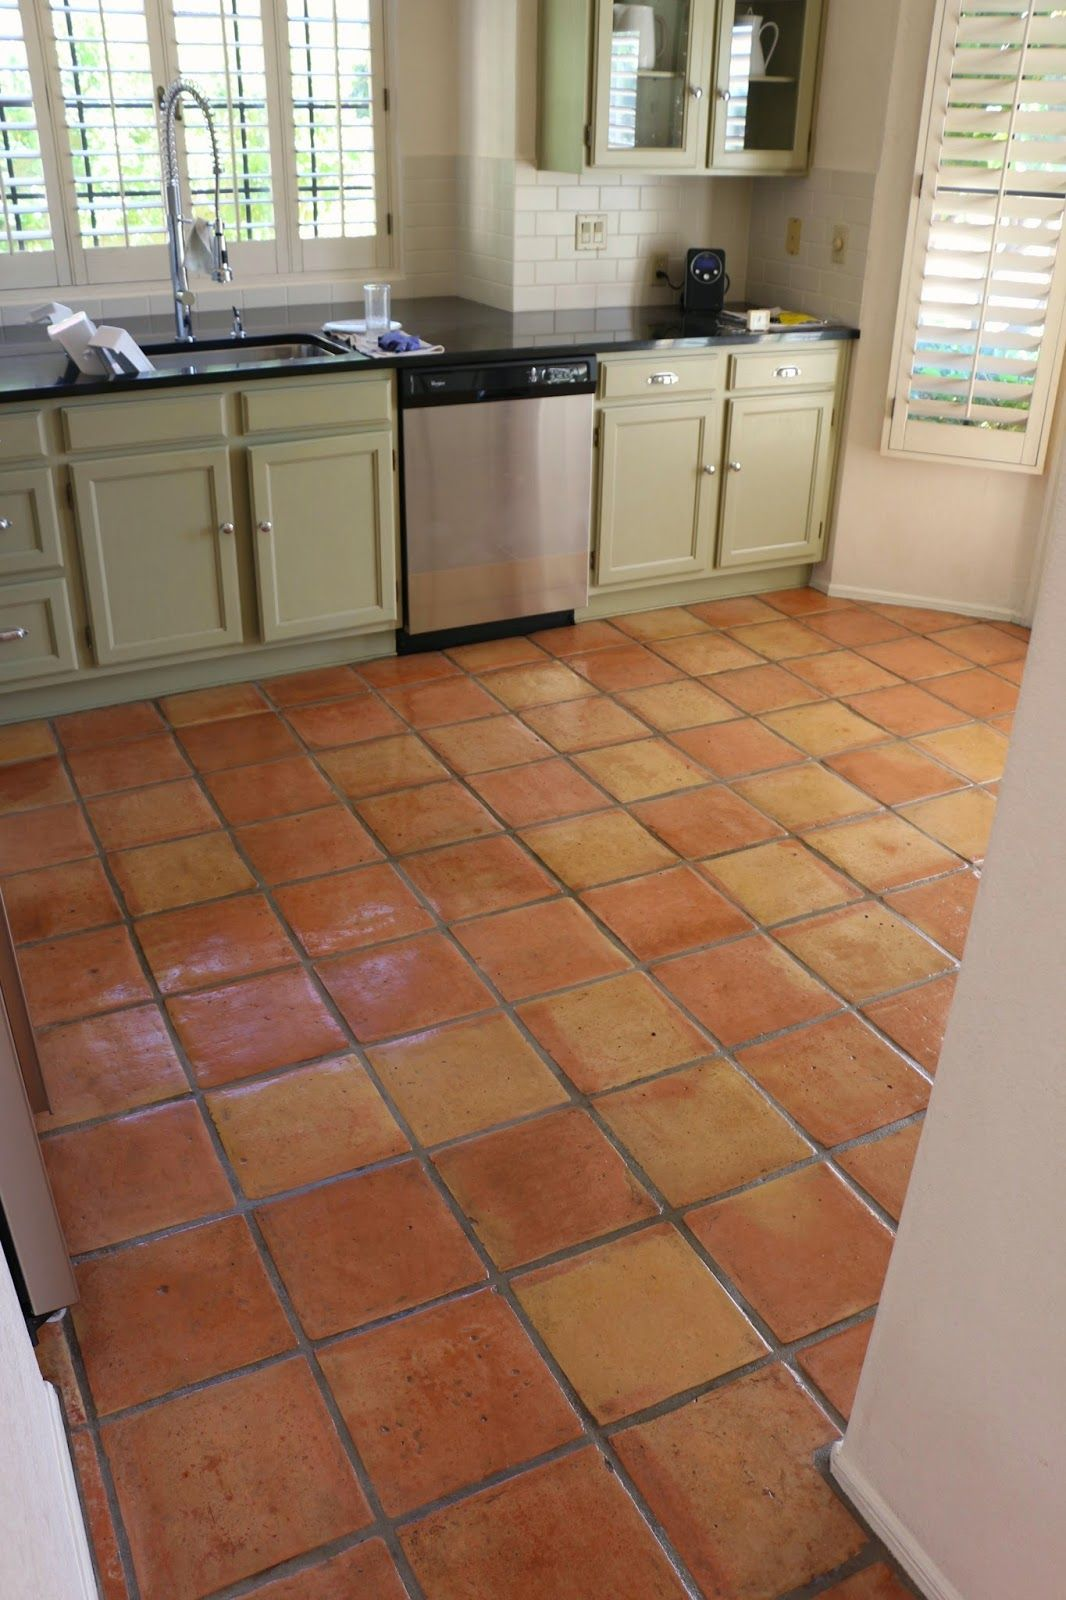 Ive lived on saltillo tile terra cotta tile floors for over dusty coyote stripping and sealing a saltillo tile floor dailygadgetfo Choice Image